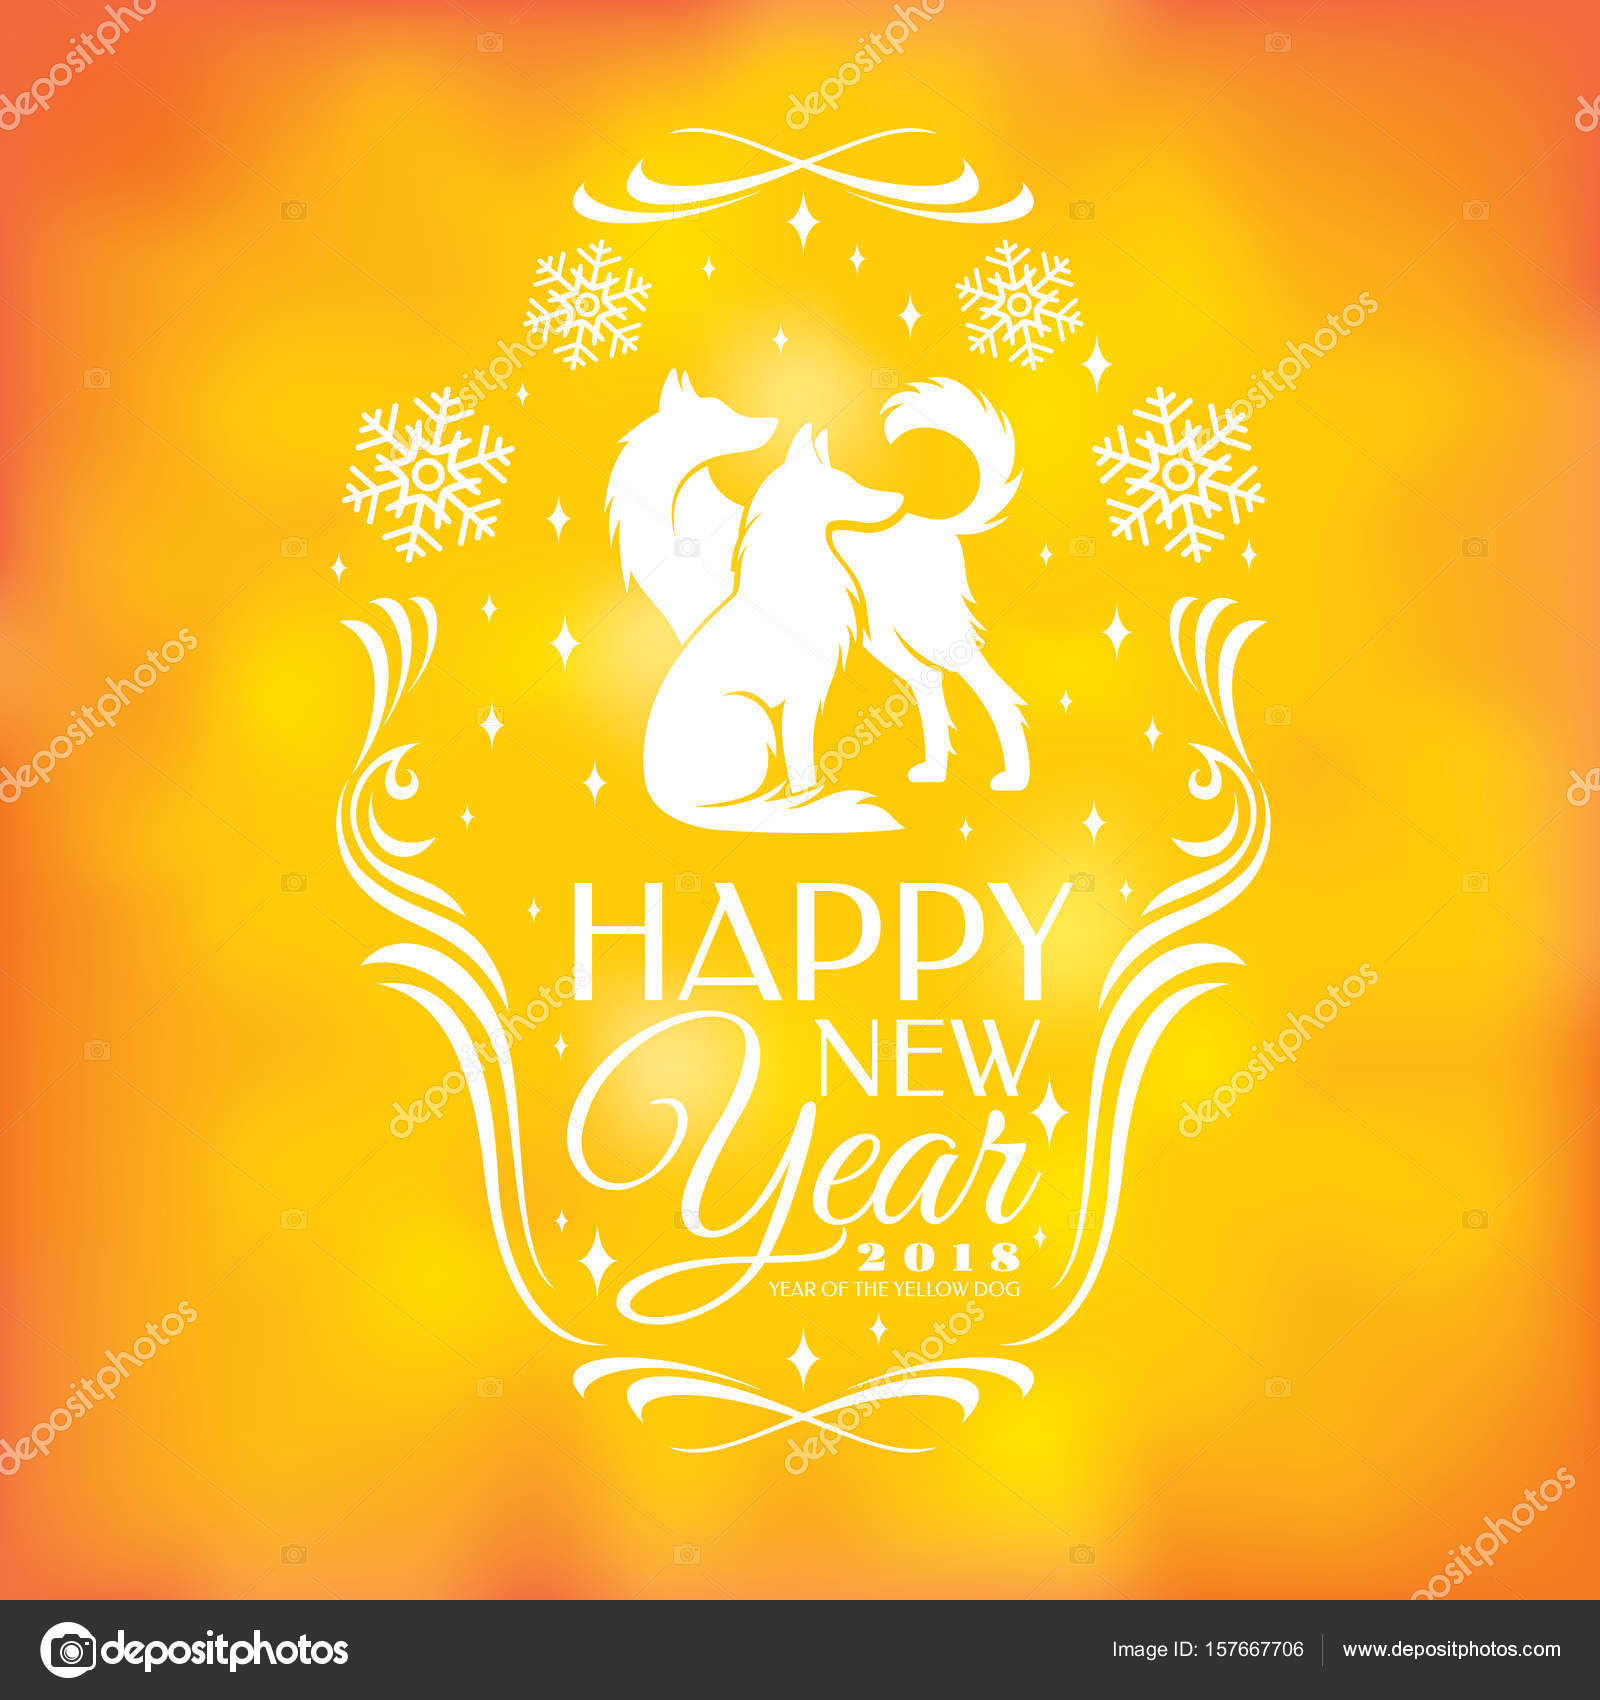 Chinese new year greeting card 2018 year stock vector selenamay chinese new year greeting card 2018 year of the yellow dog vector illustration vector by selenamay m4hsunfo